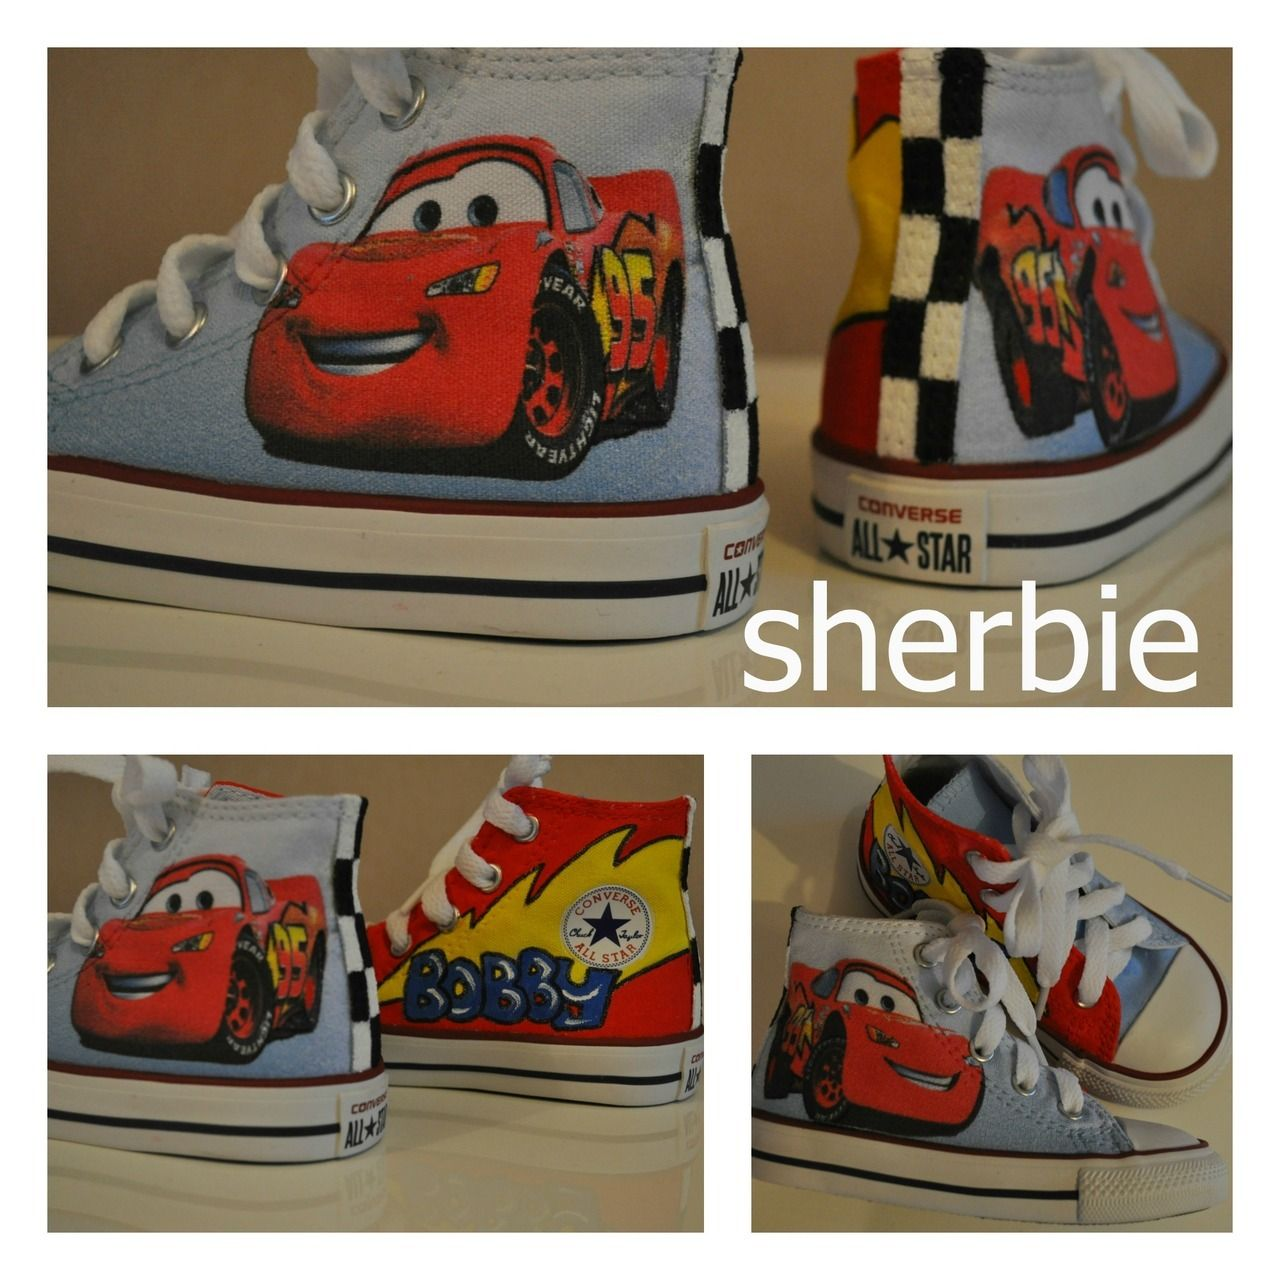 686f9ba92439 Sherbie.co.uk - Cars Lightning Mcqueen custom Converse shoes